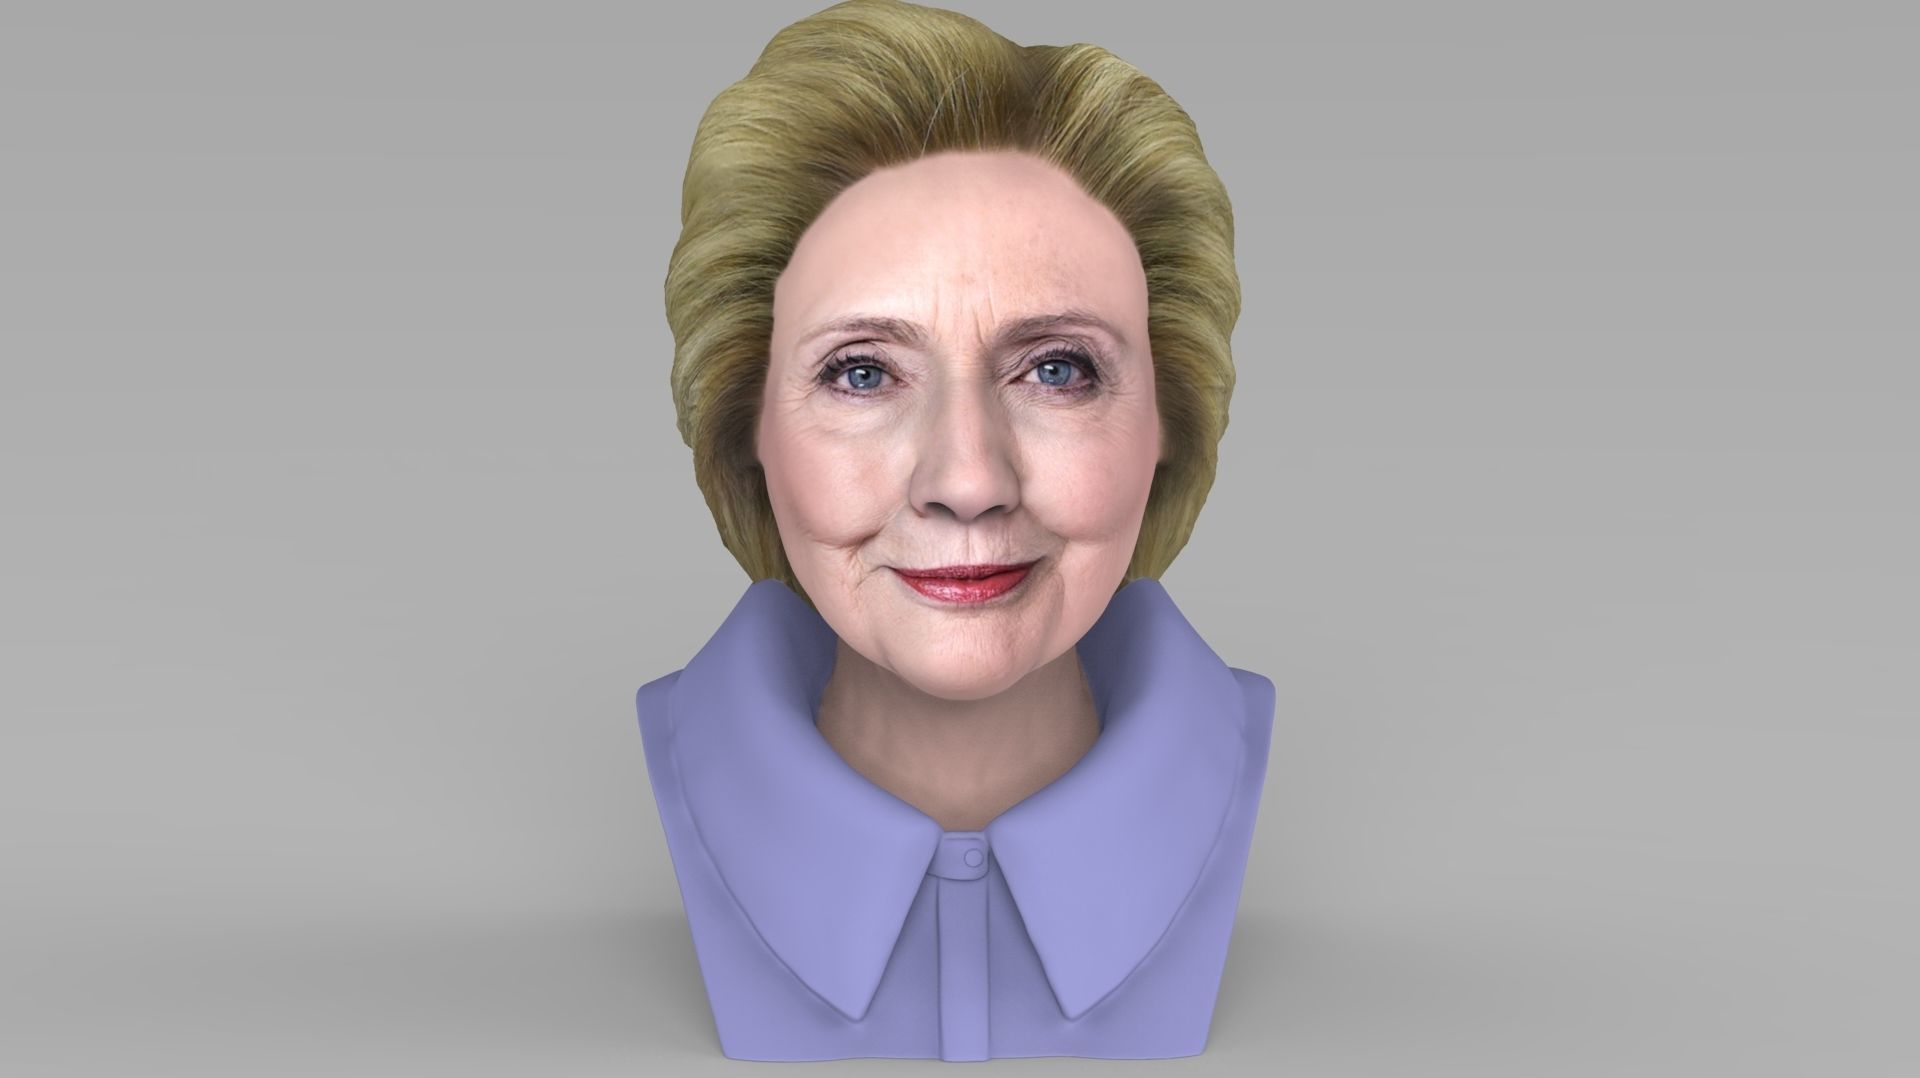 Hillary Clinton bust ready for full color 3D printing